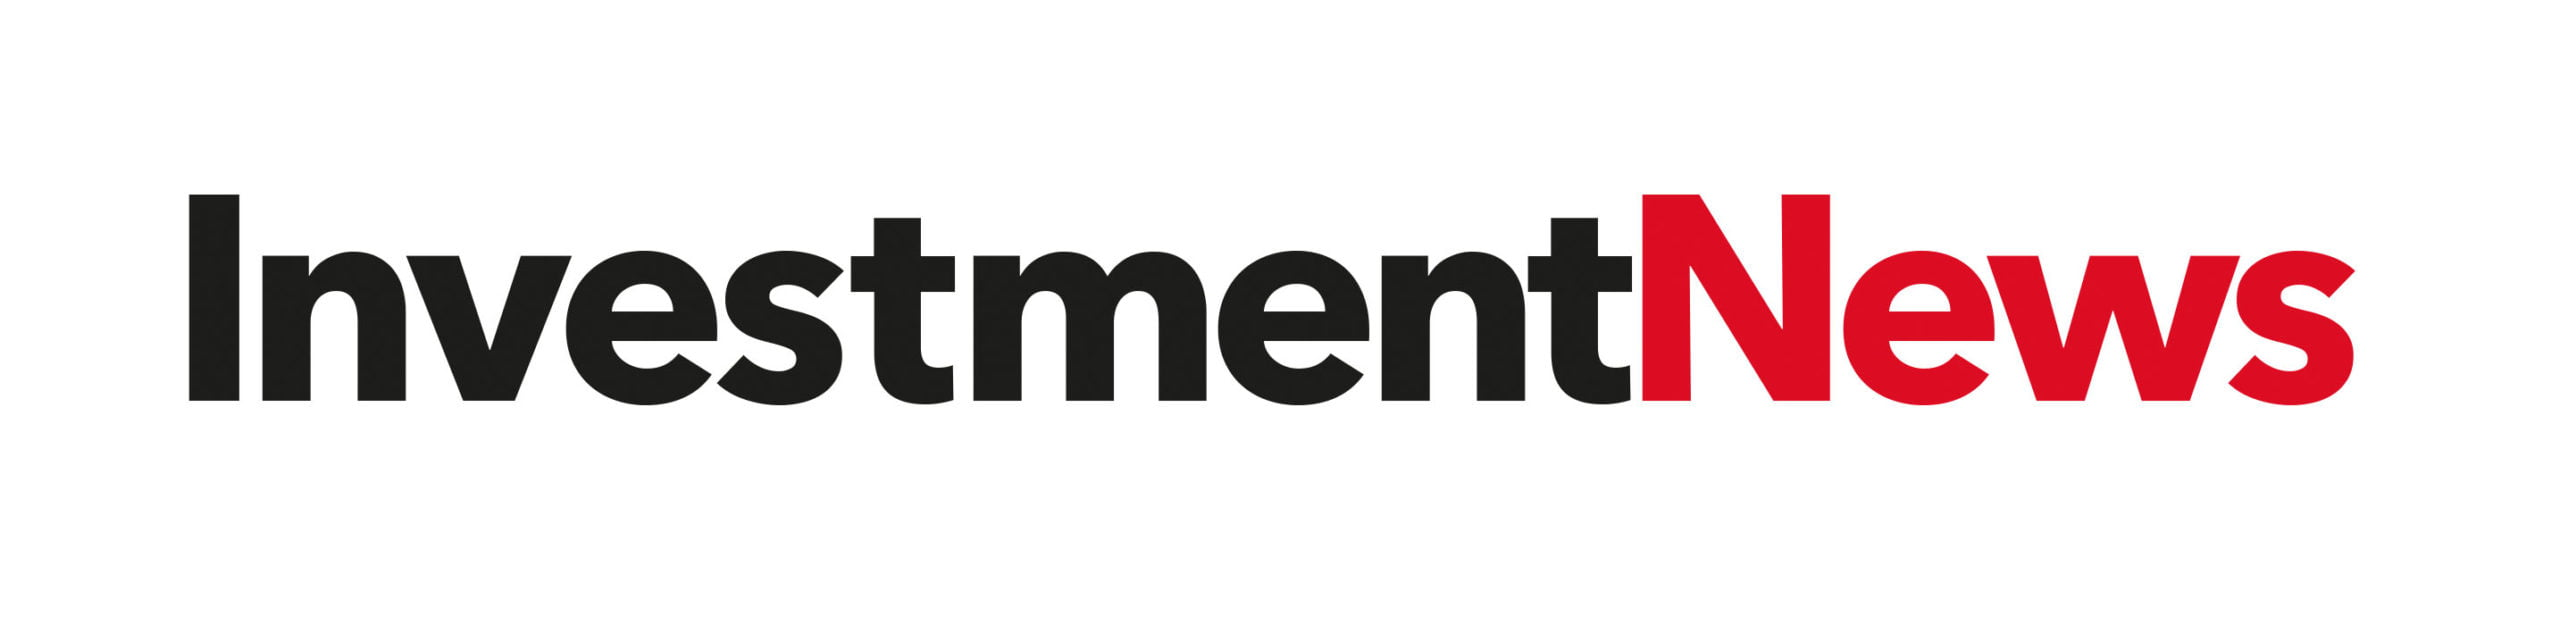 InvestmentNews Introduces Innovative New Design, User Experience and Management Team